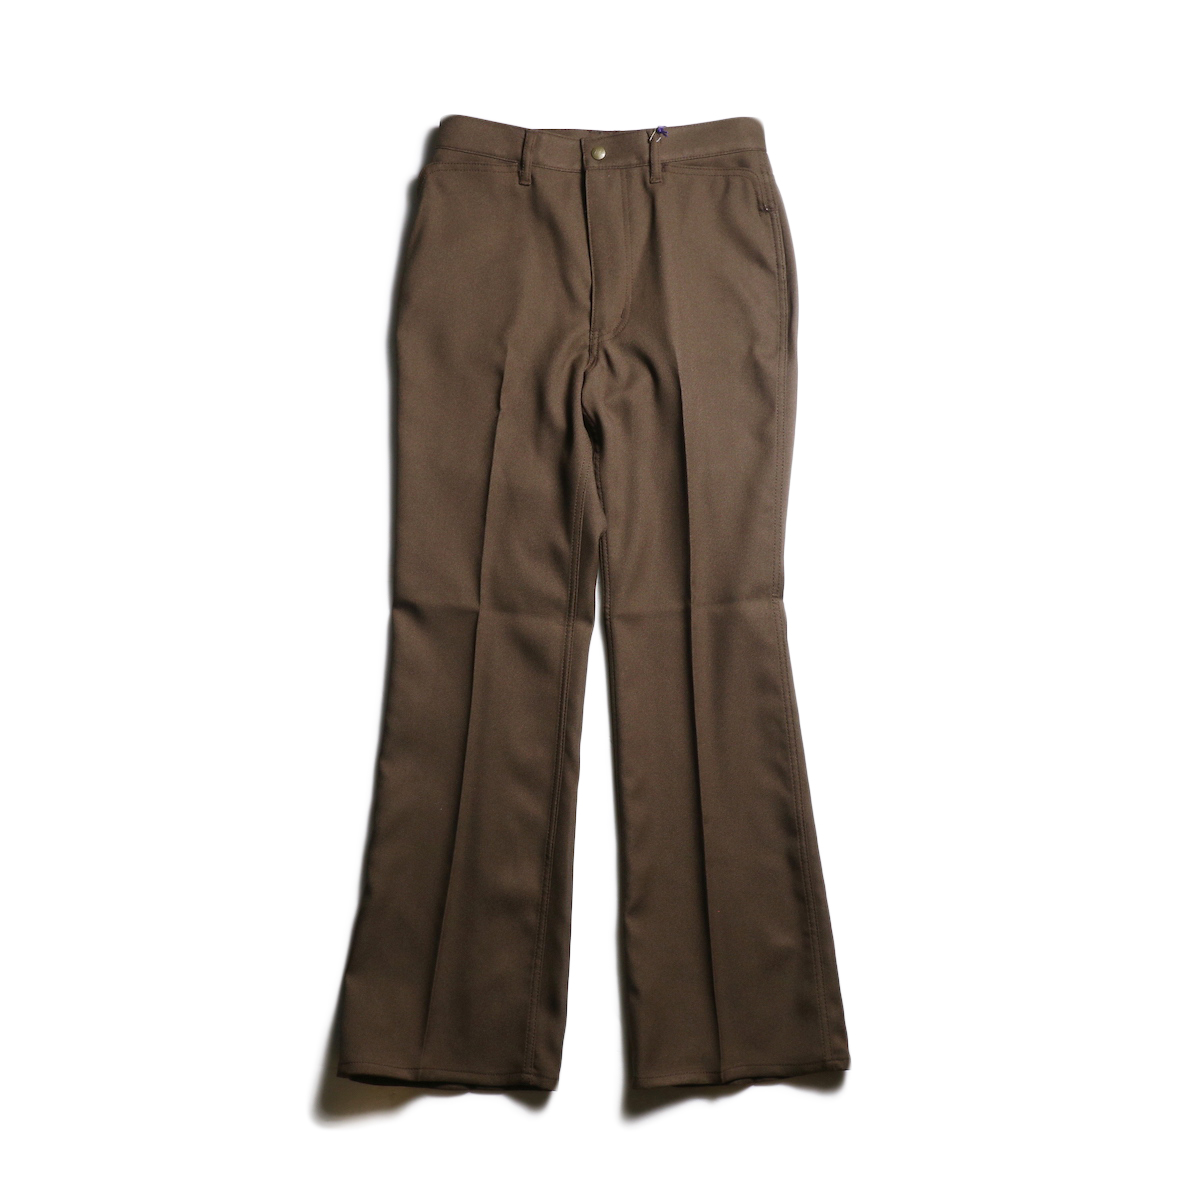 Needles / BOOT-CUT JEAN - POLY TWILL (Brown)